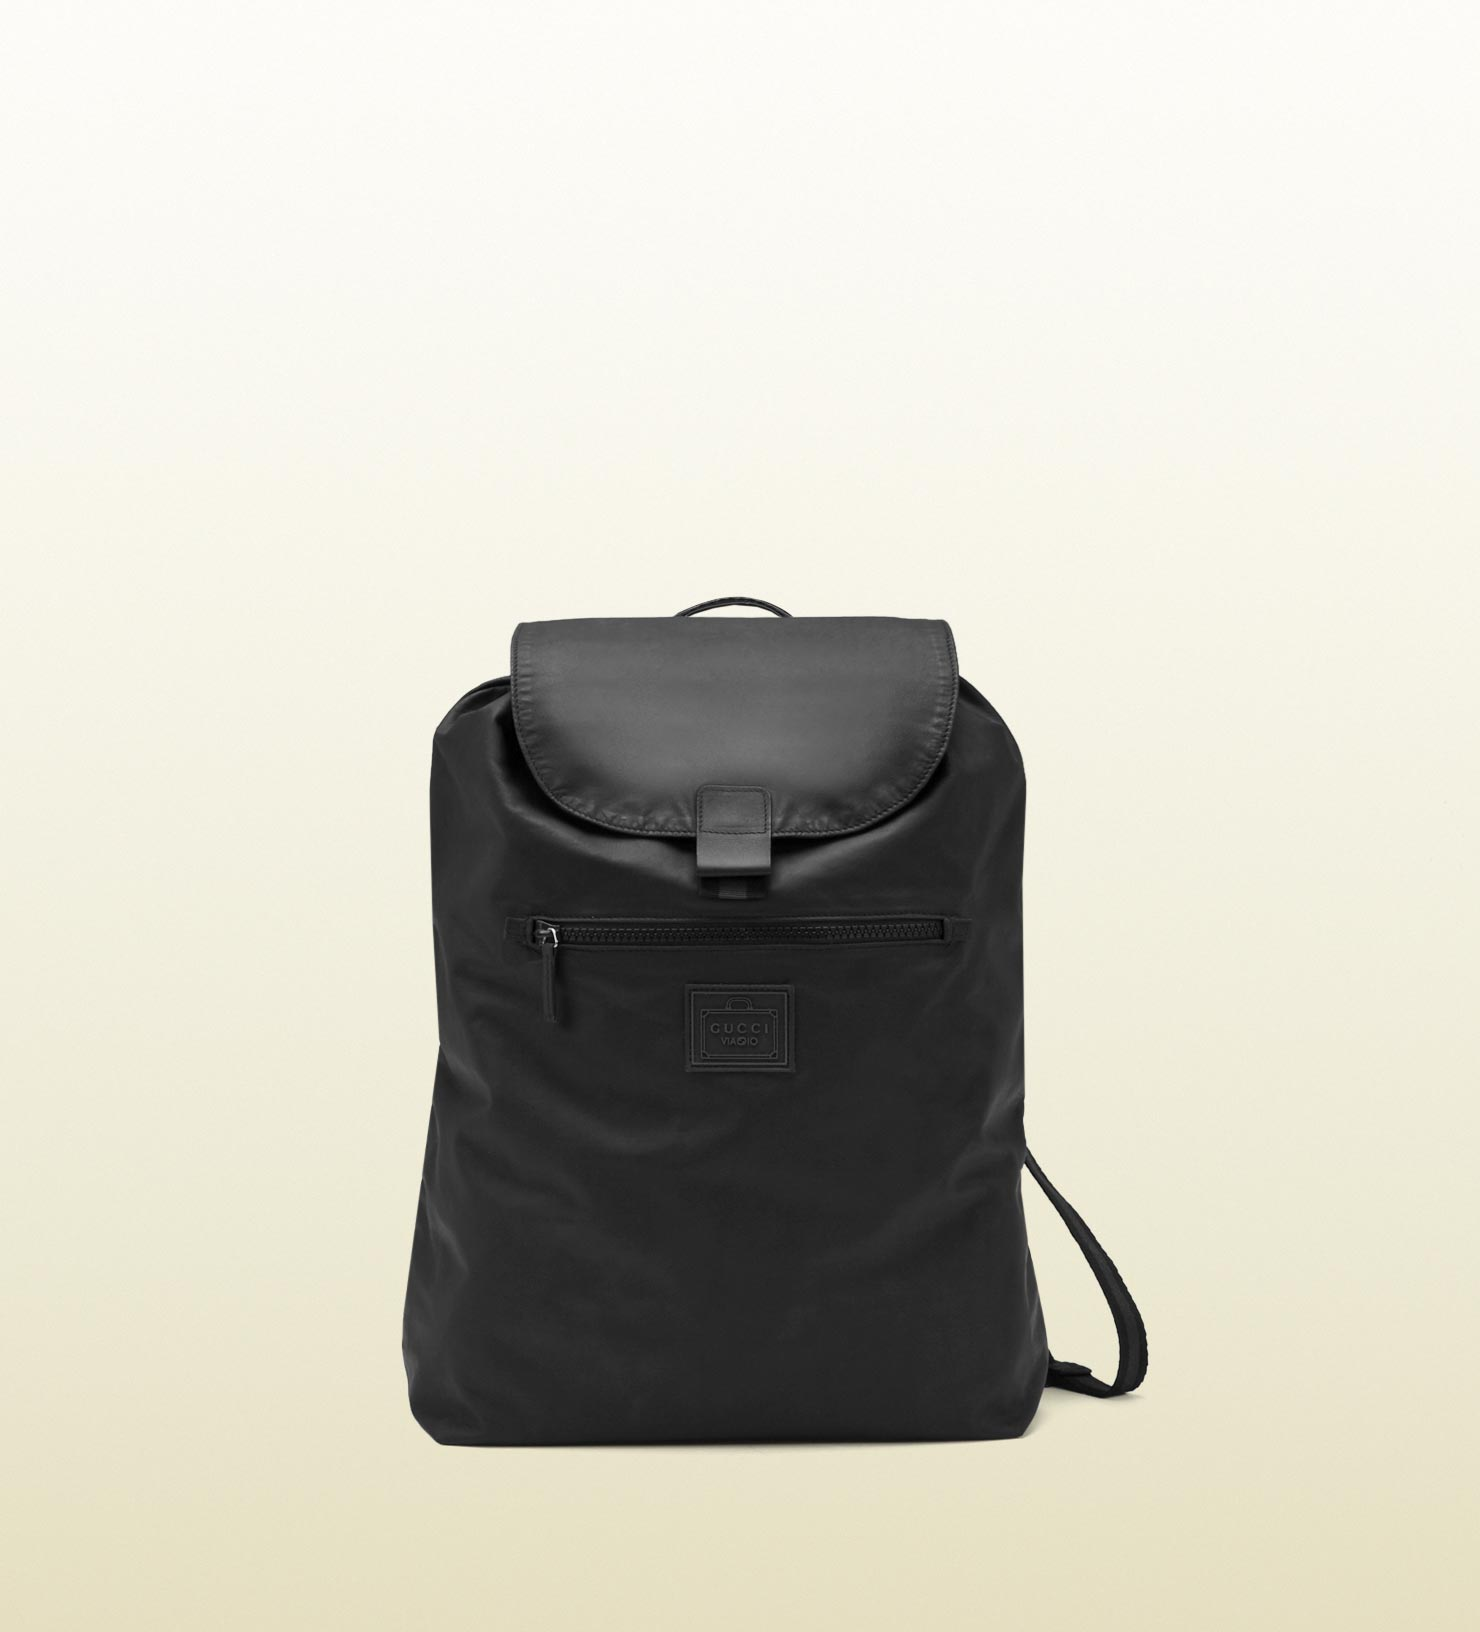 Gucci - backpack from viaggio collection   308871AVT1R8615